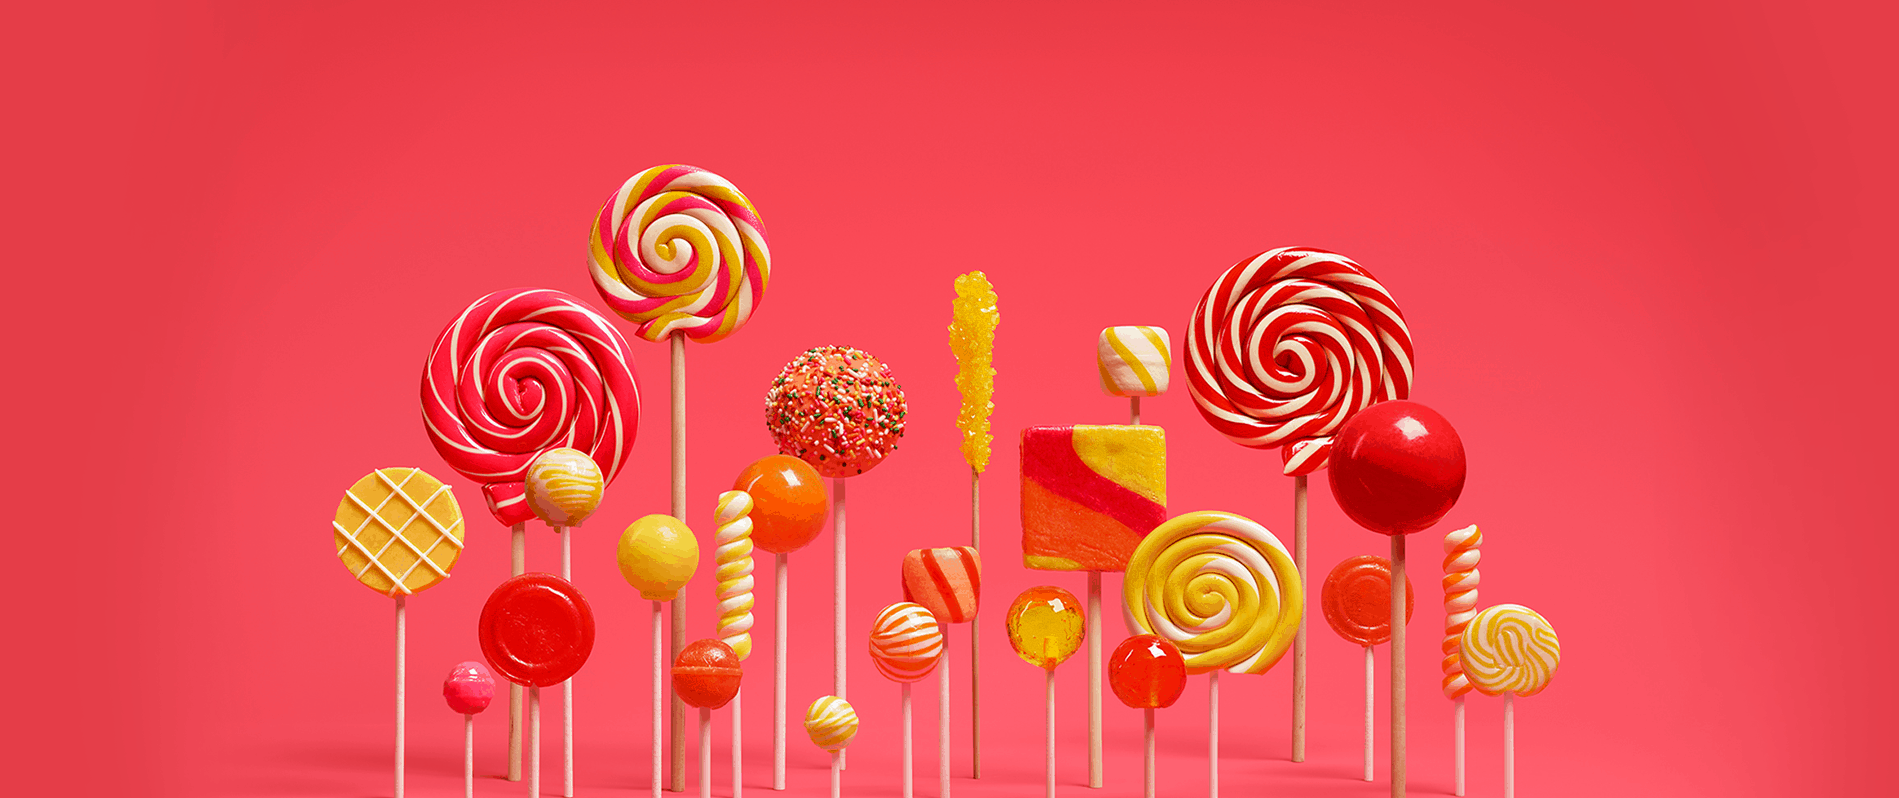 lollipop_5